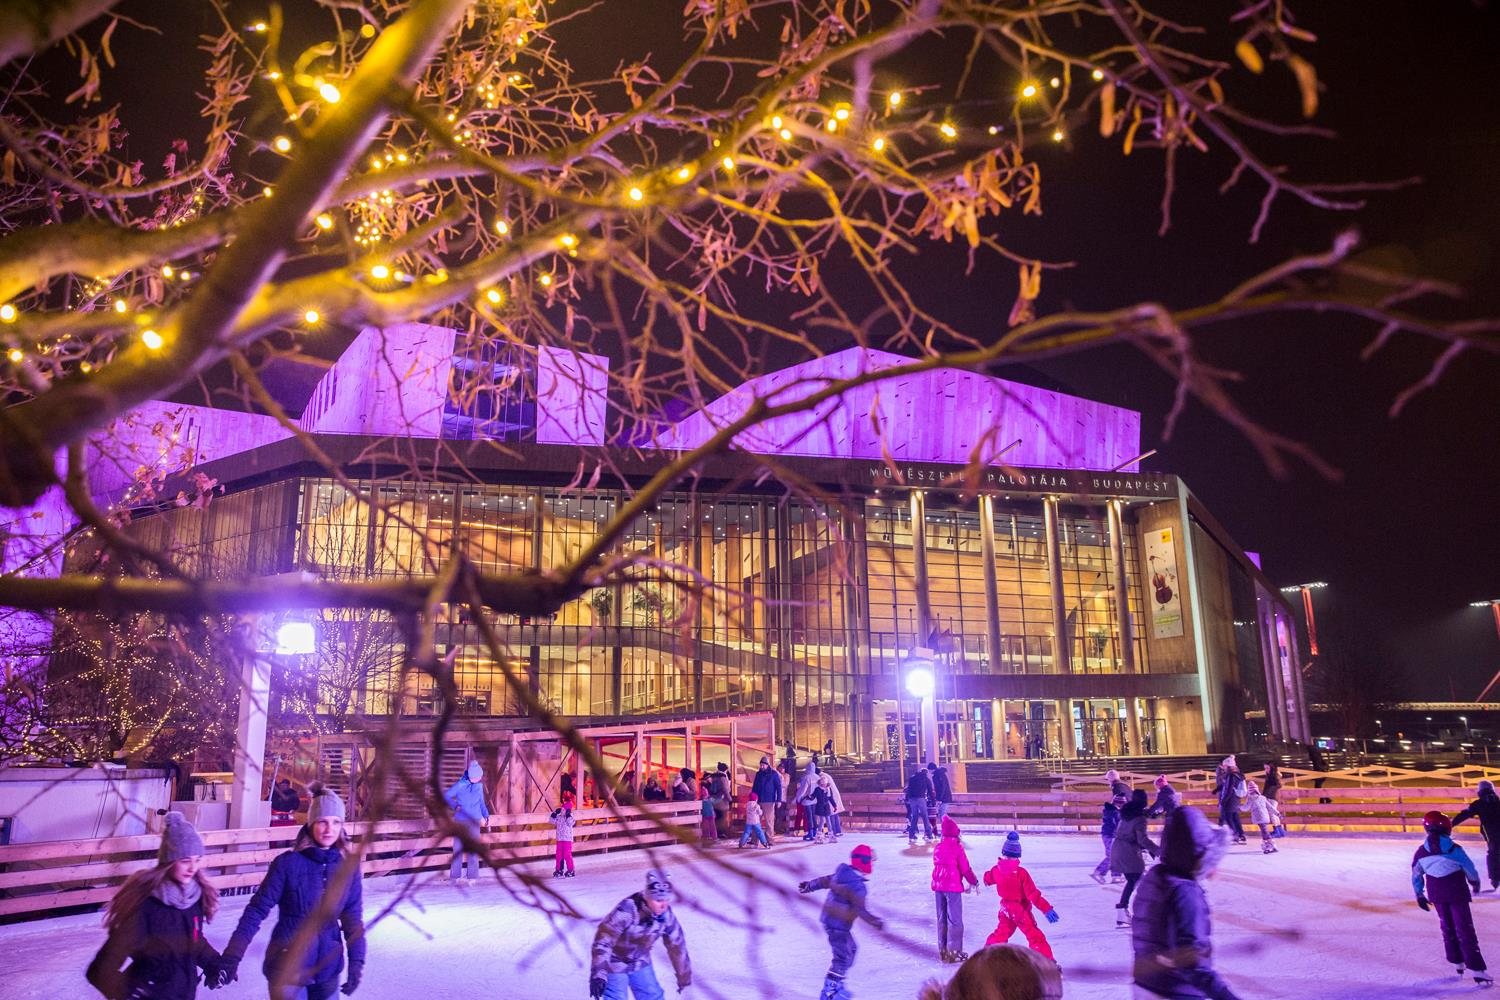 The Best Outdoor Ice Skating Rinks in Budapest